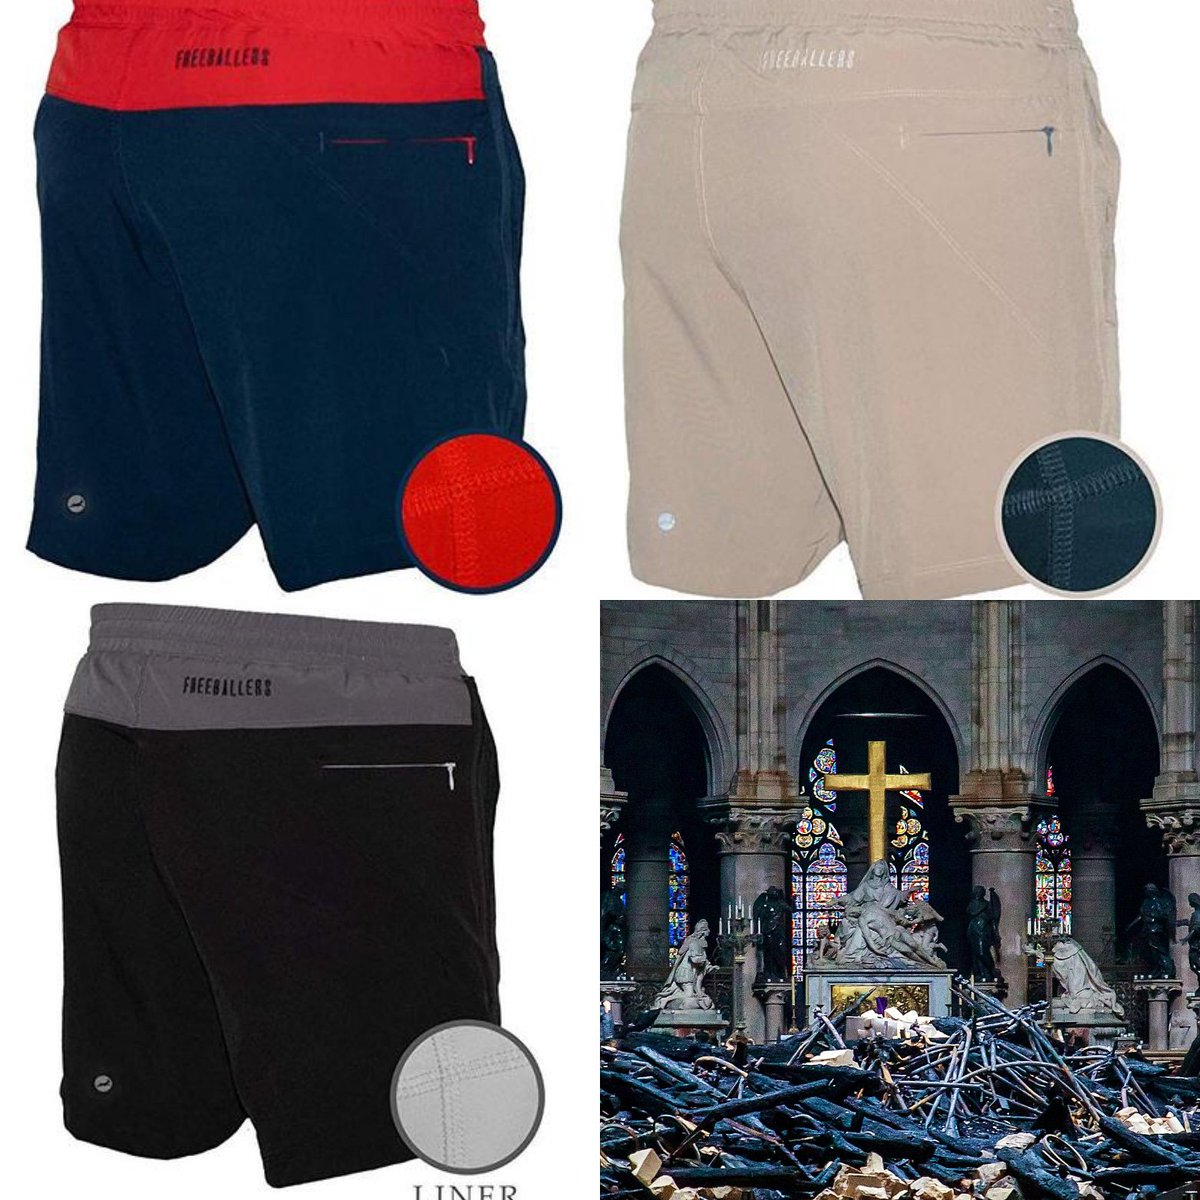 f96af148b8 Big restock on the sport shorts! 10% of all orders go to Notre Dame